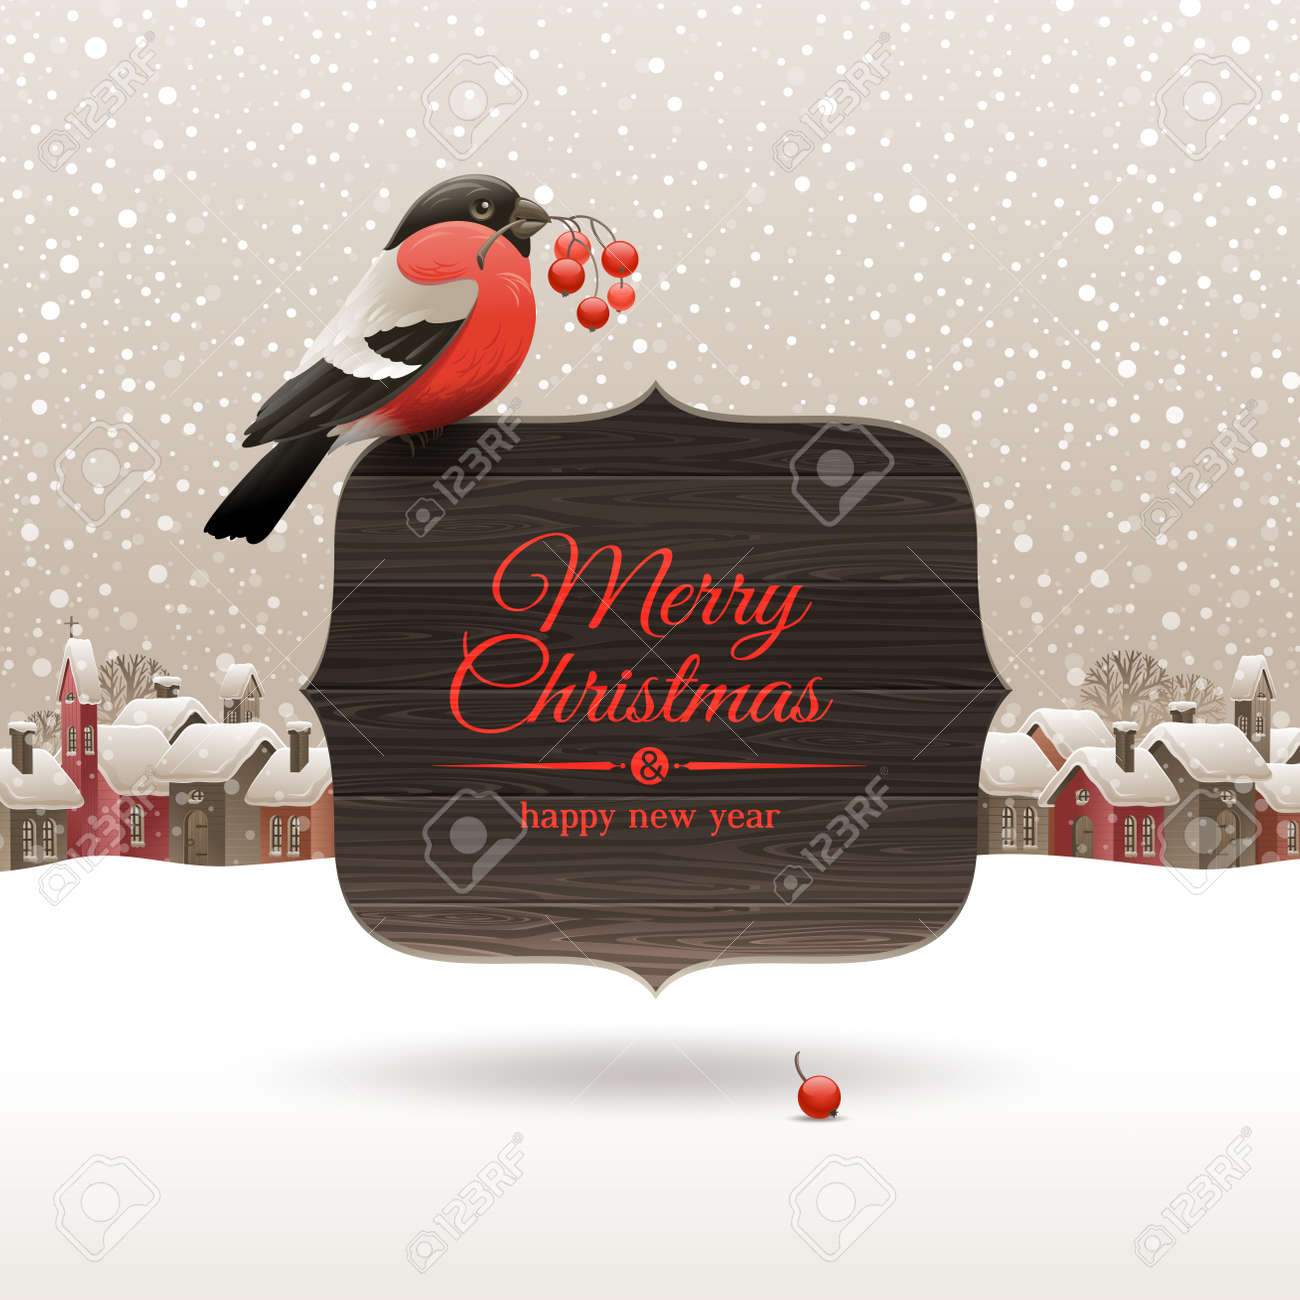 Christmas illustration - bullfinch with ashberries sitting on wooden banners with holidays greeting Stock Vector - 16304471